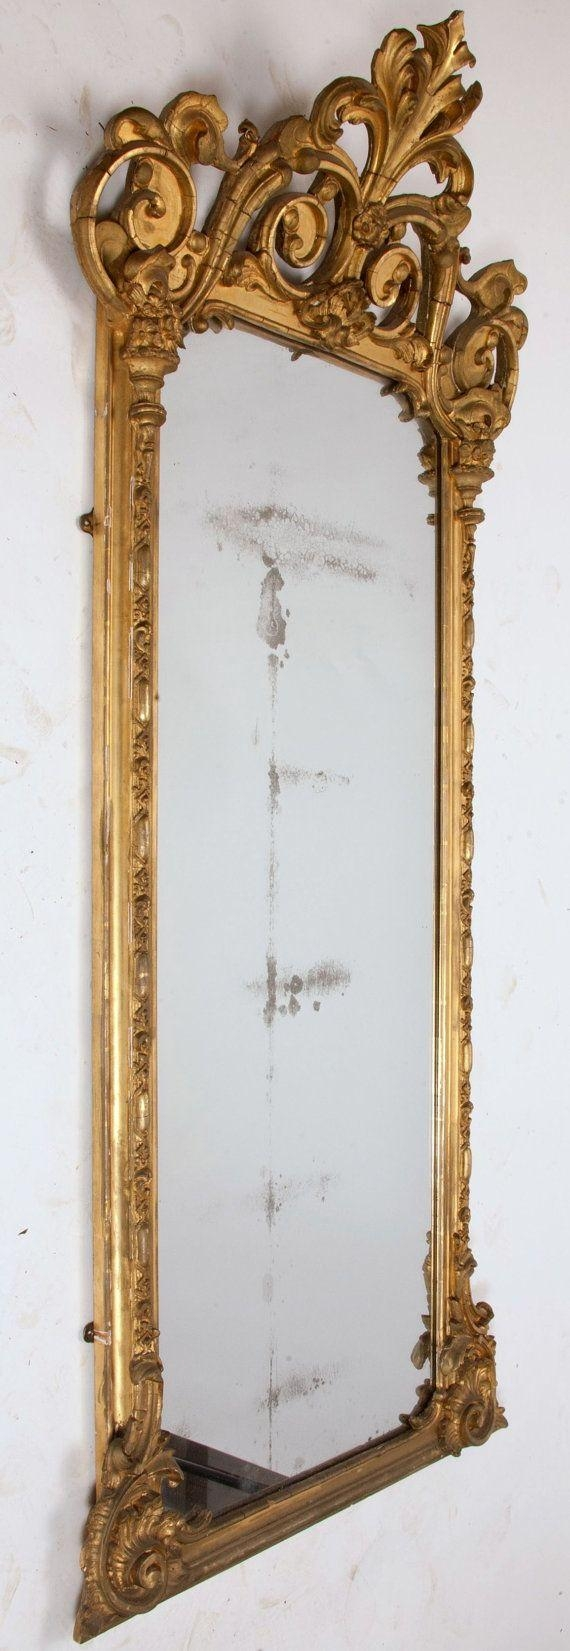 Top 25+ Best Large Gold Mirror Ideas On Pinterest | Painting Within Baroque Mirror Gold (View 13 of 20)